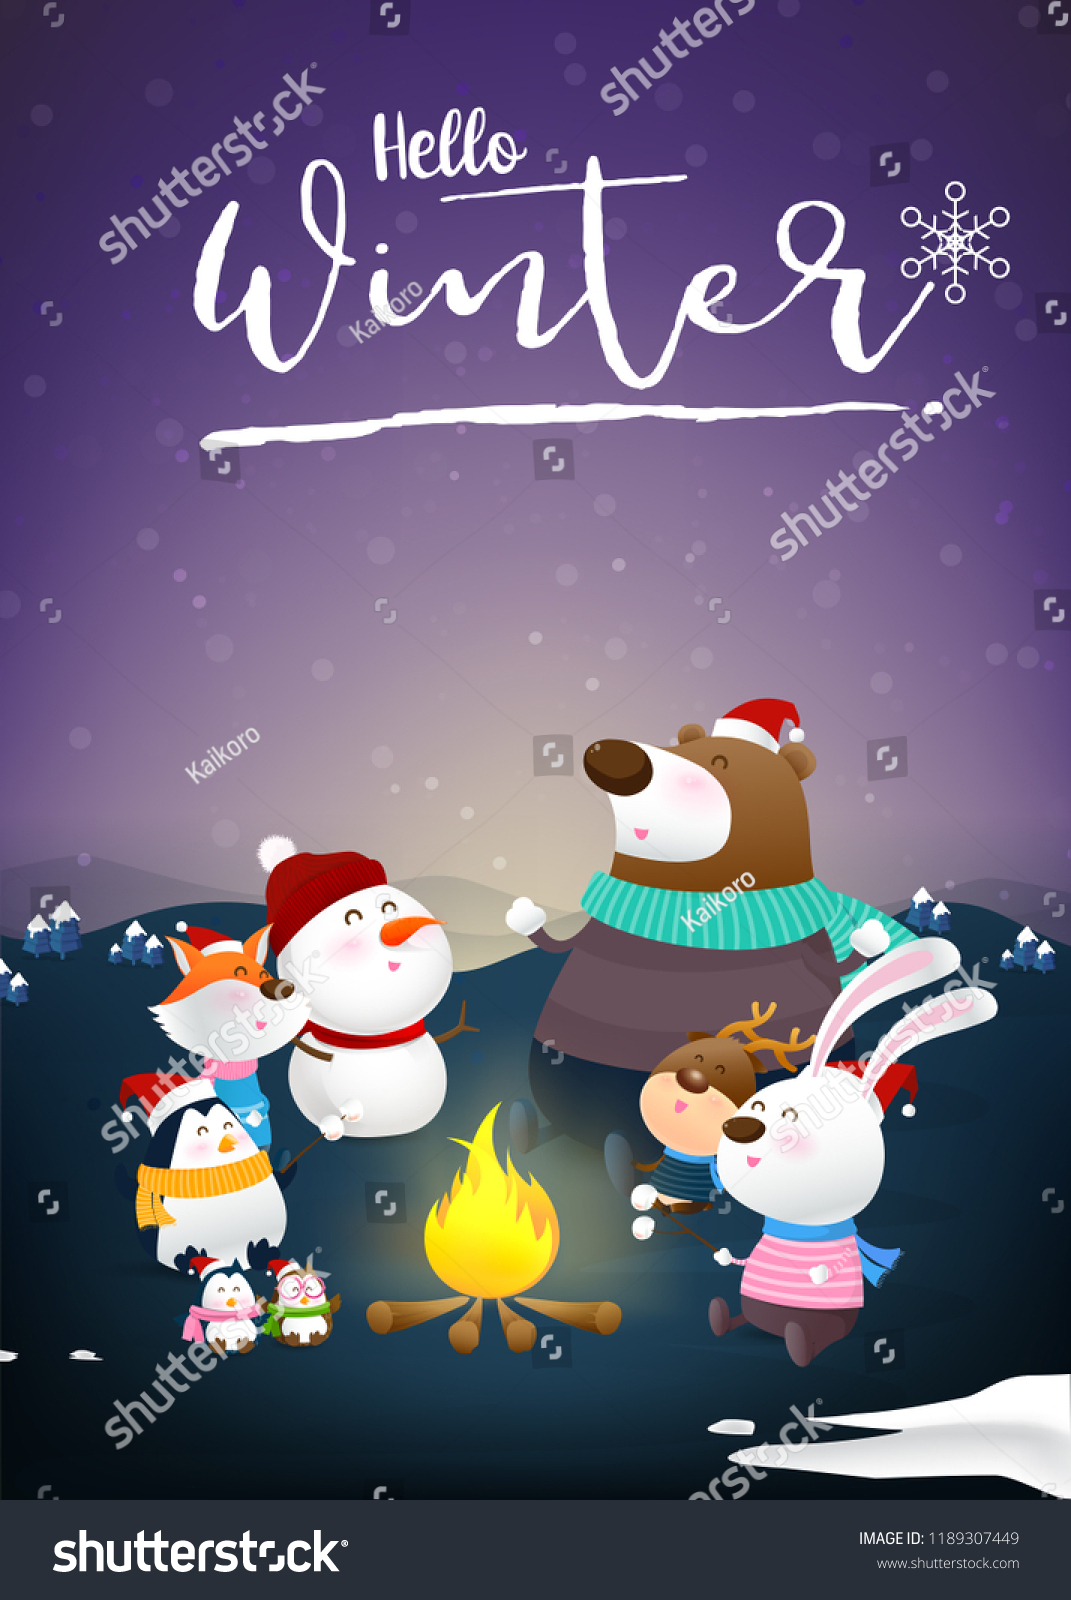 Hello winter calligraphy with animal friends cartoon fox rabbit own penguin beer and snow man sitting around fire with happiness with snow fall at night atmosphere vector illustration #1189307449